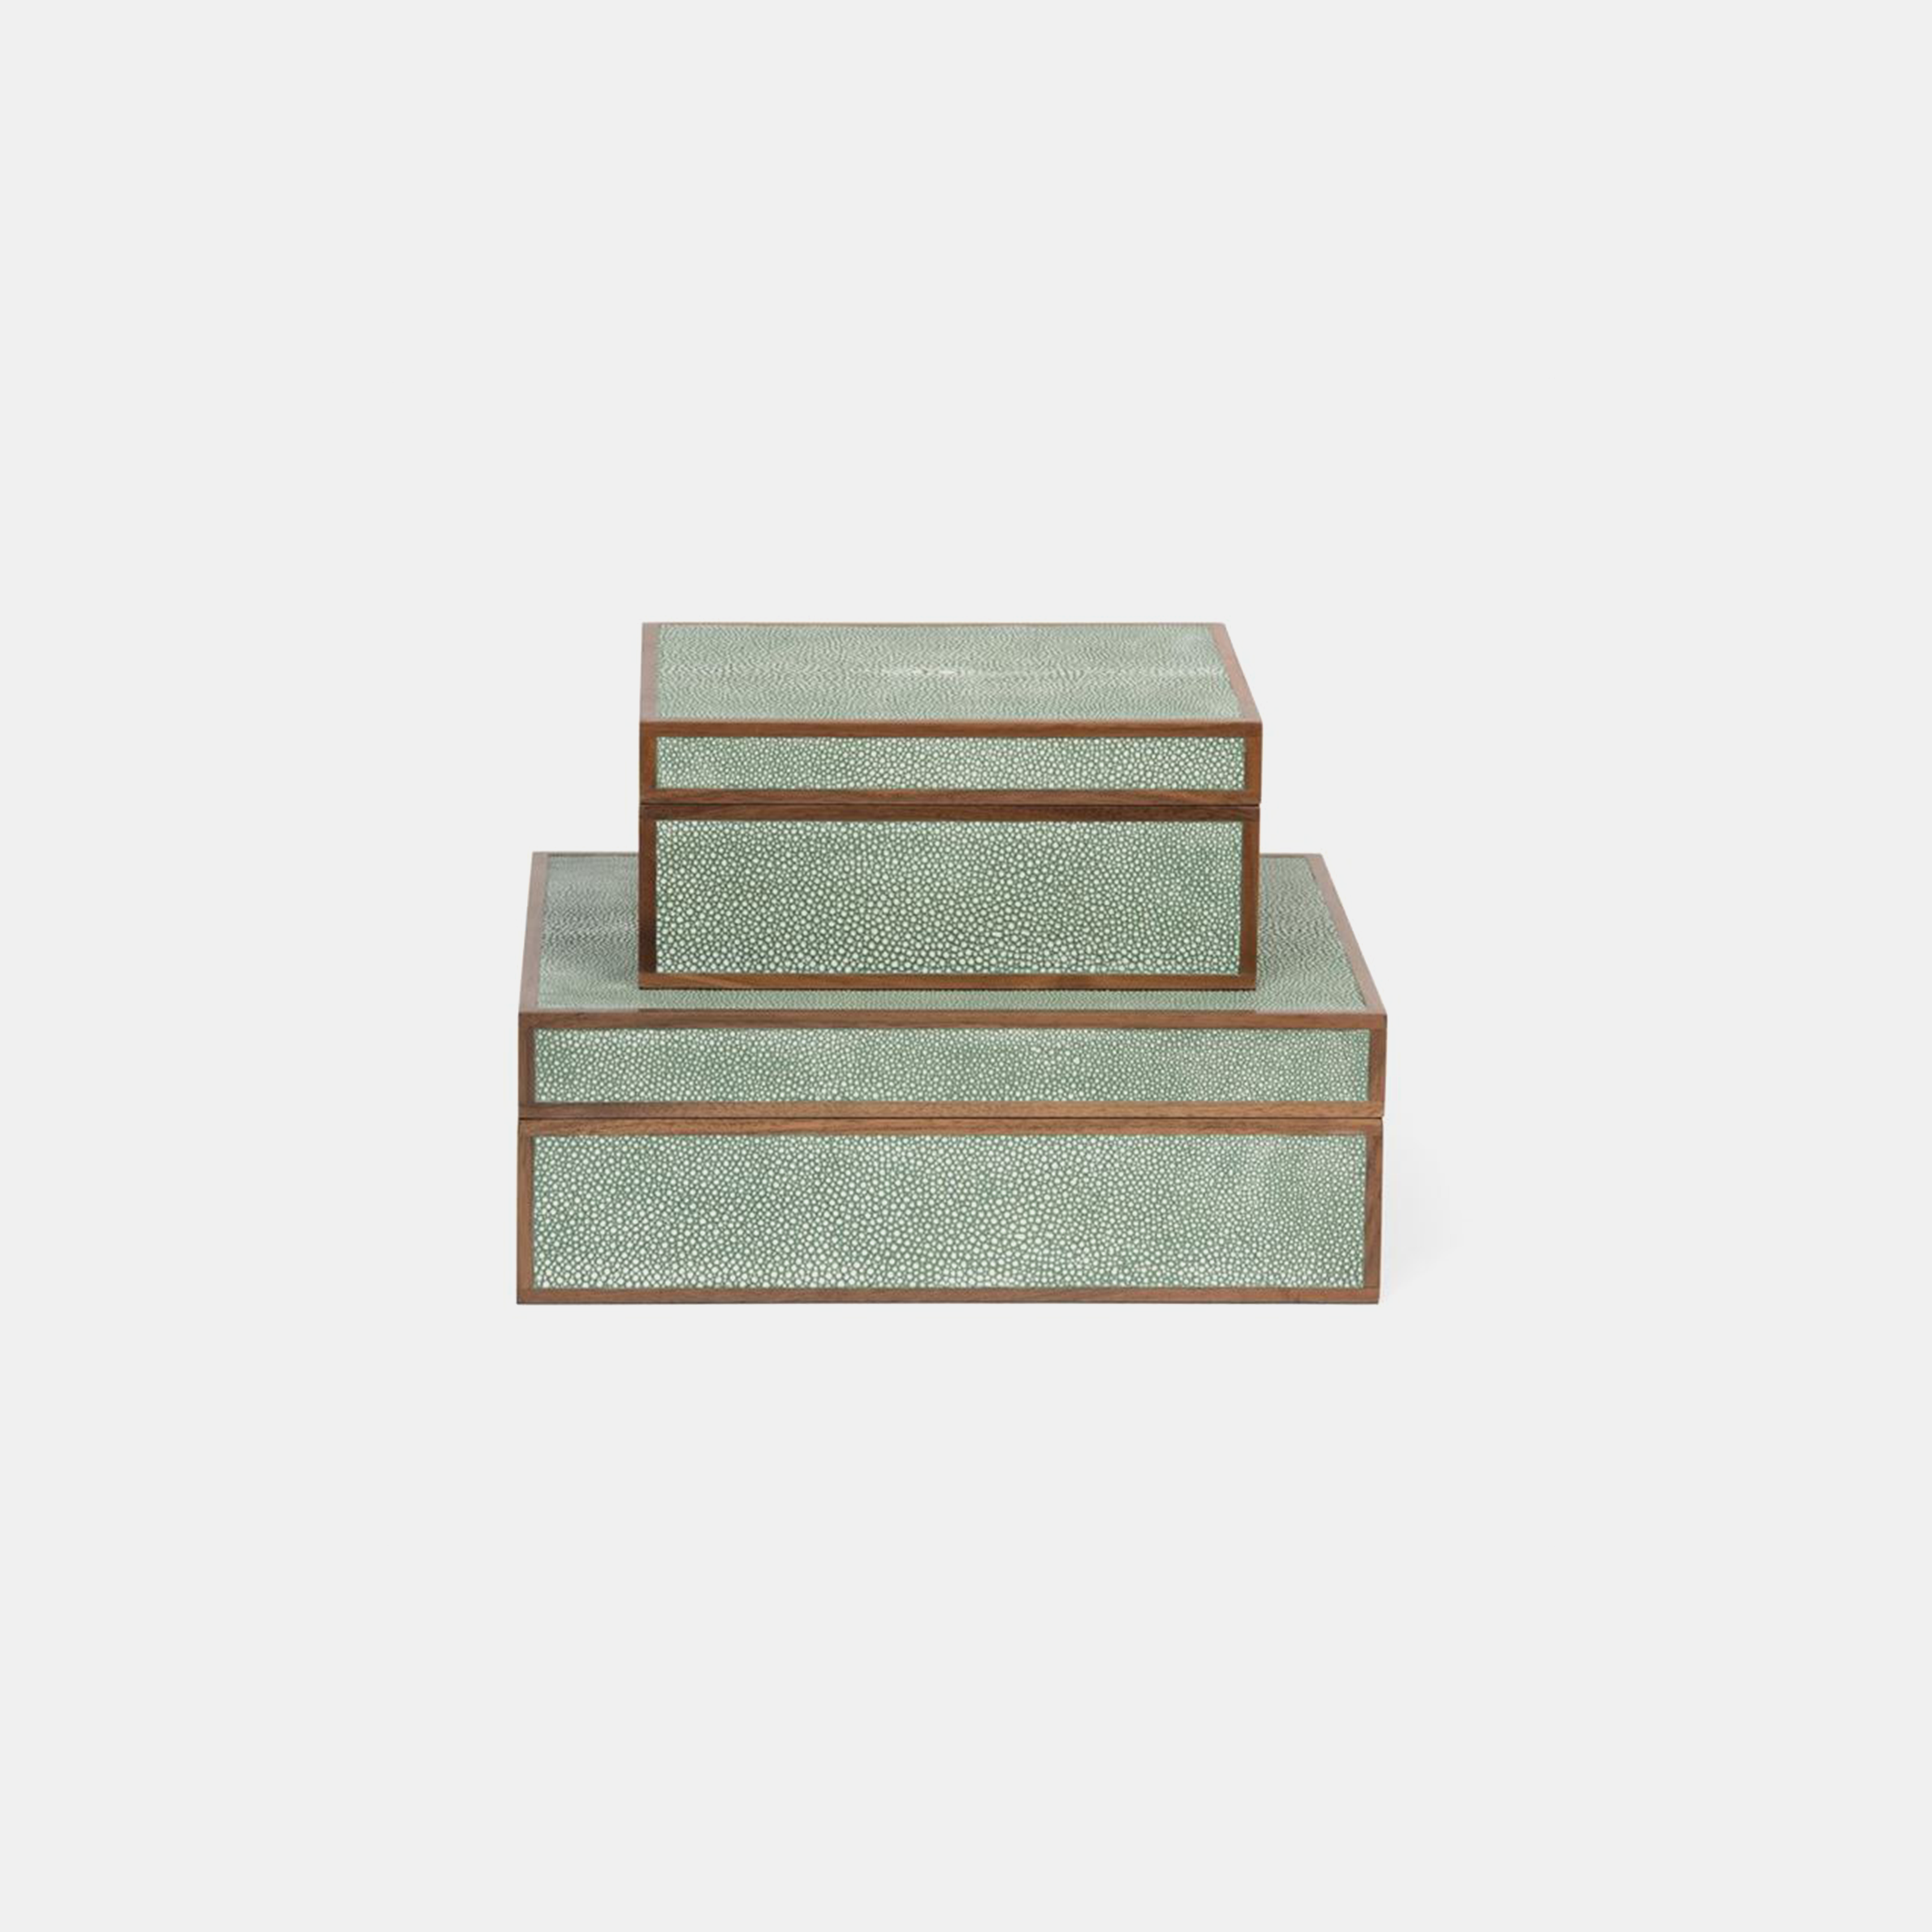 Cooper Boxes  Available in sage (shown), sand, gray, turquoise, ivory, snow, scarlet, navy, and dark mushroom. SKU2874MGS